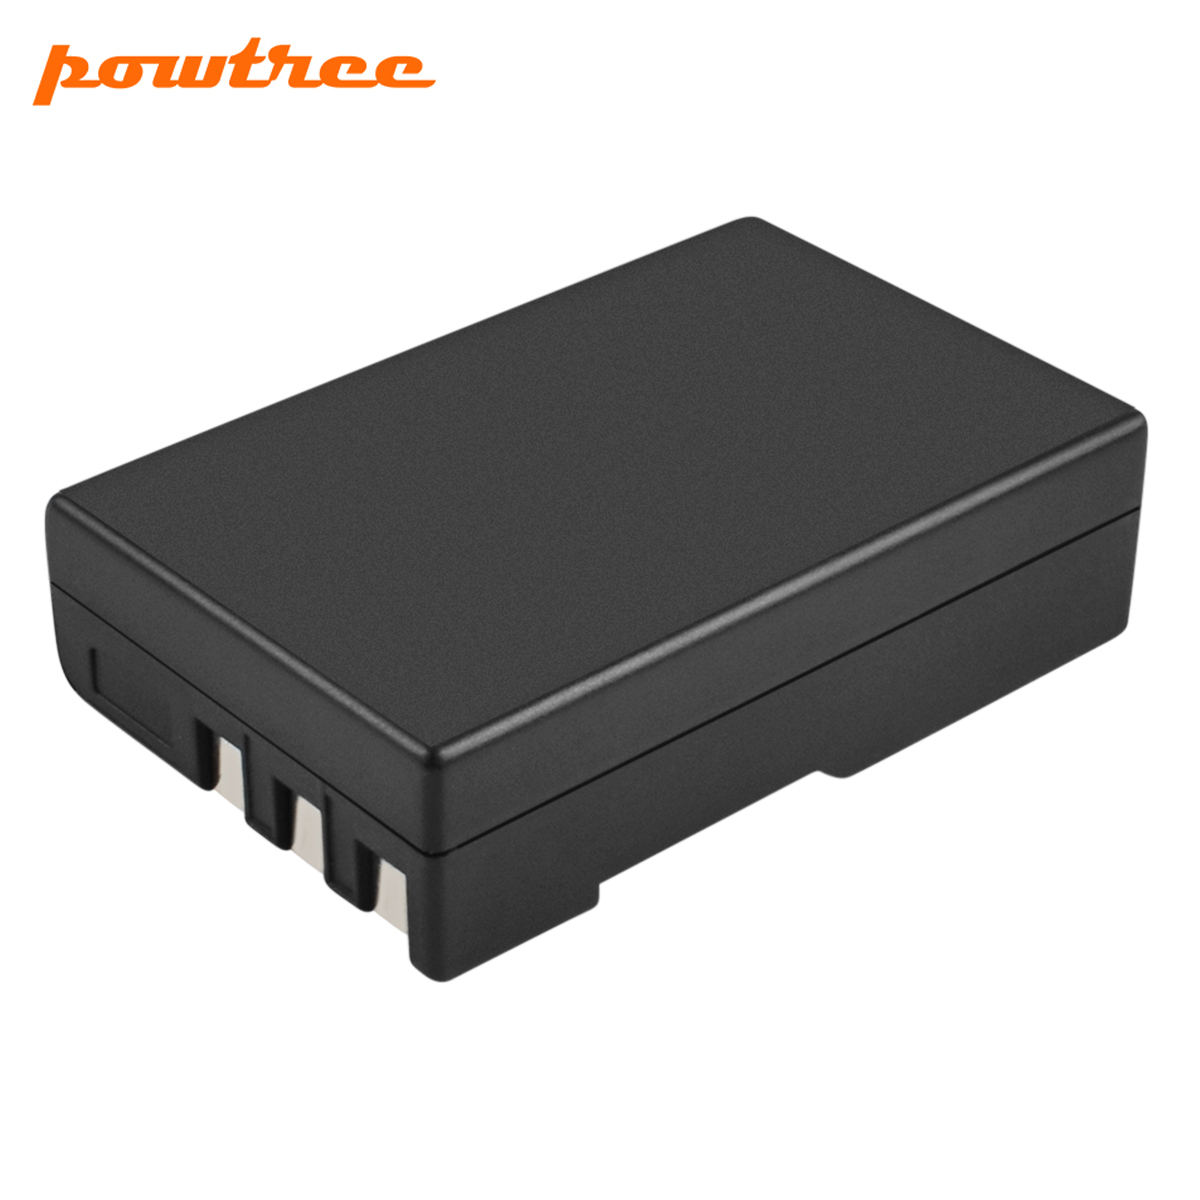 Powtree 2000mAh EN EL9 EN EL9 EN EL9a EN EL9a EL9a Camera Battery For Nikon EN EL9a D40 D60 D40X D5000 D3000 L10 in Replacement Batteries from Consumer Electronics